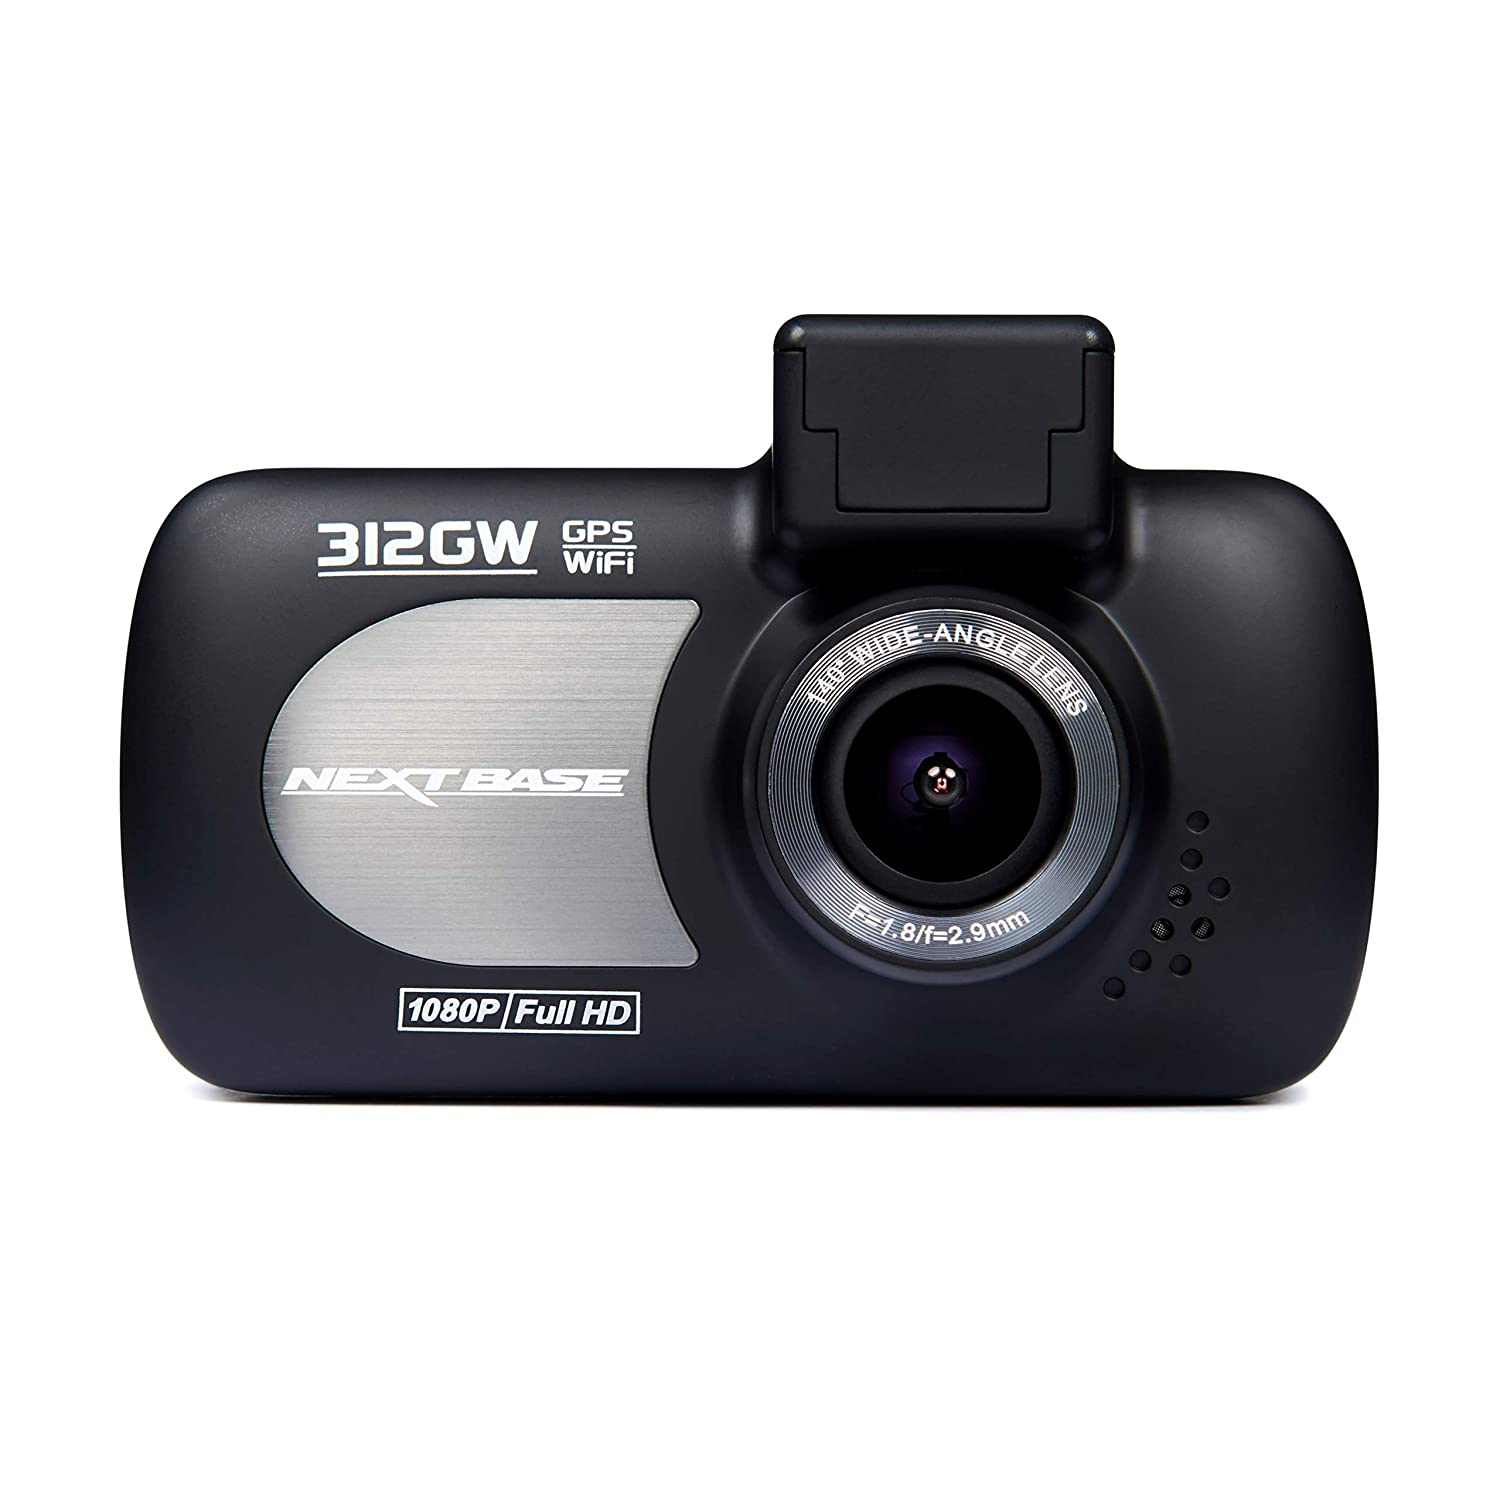 8eceeee73ed Nextbase 312GW - Full 1080p HD In-Car Dash Camera DVR - 140° Viewing Angle  - WiFi and GPS - Black  Amazon.co.uk  Electronics